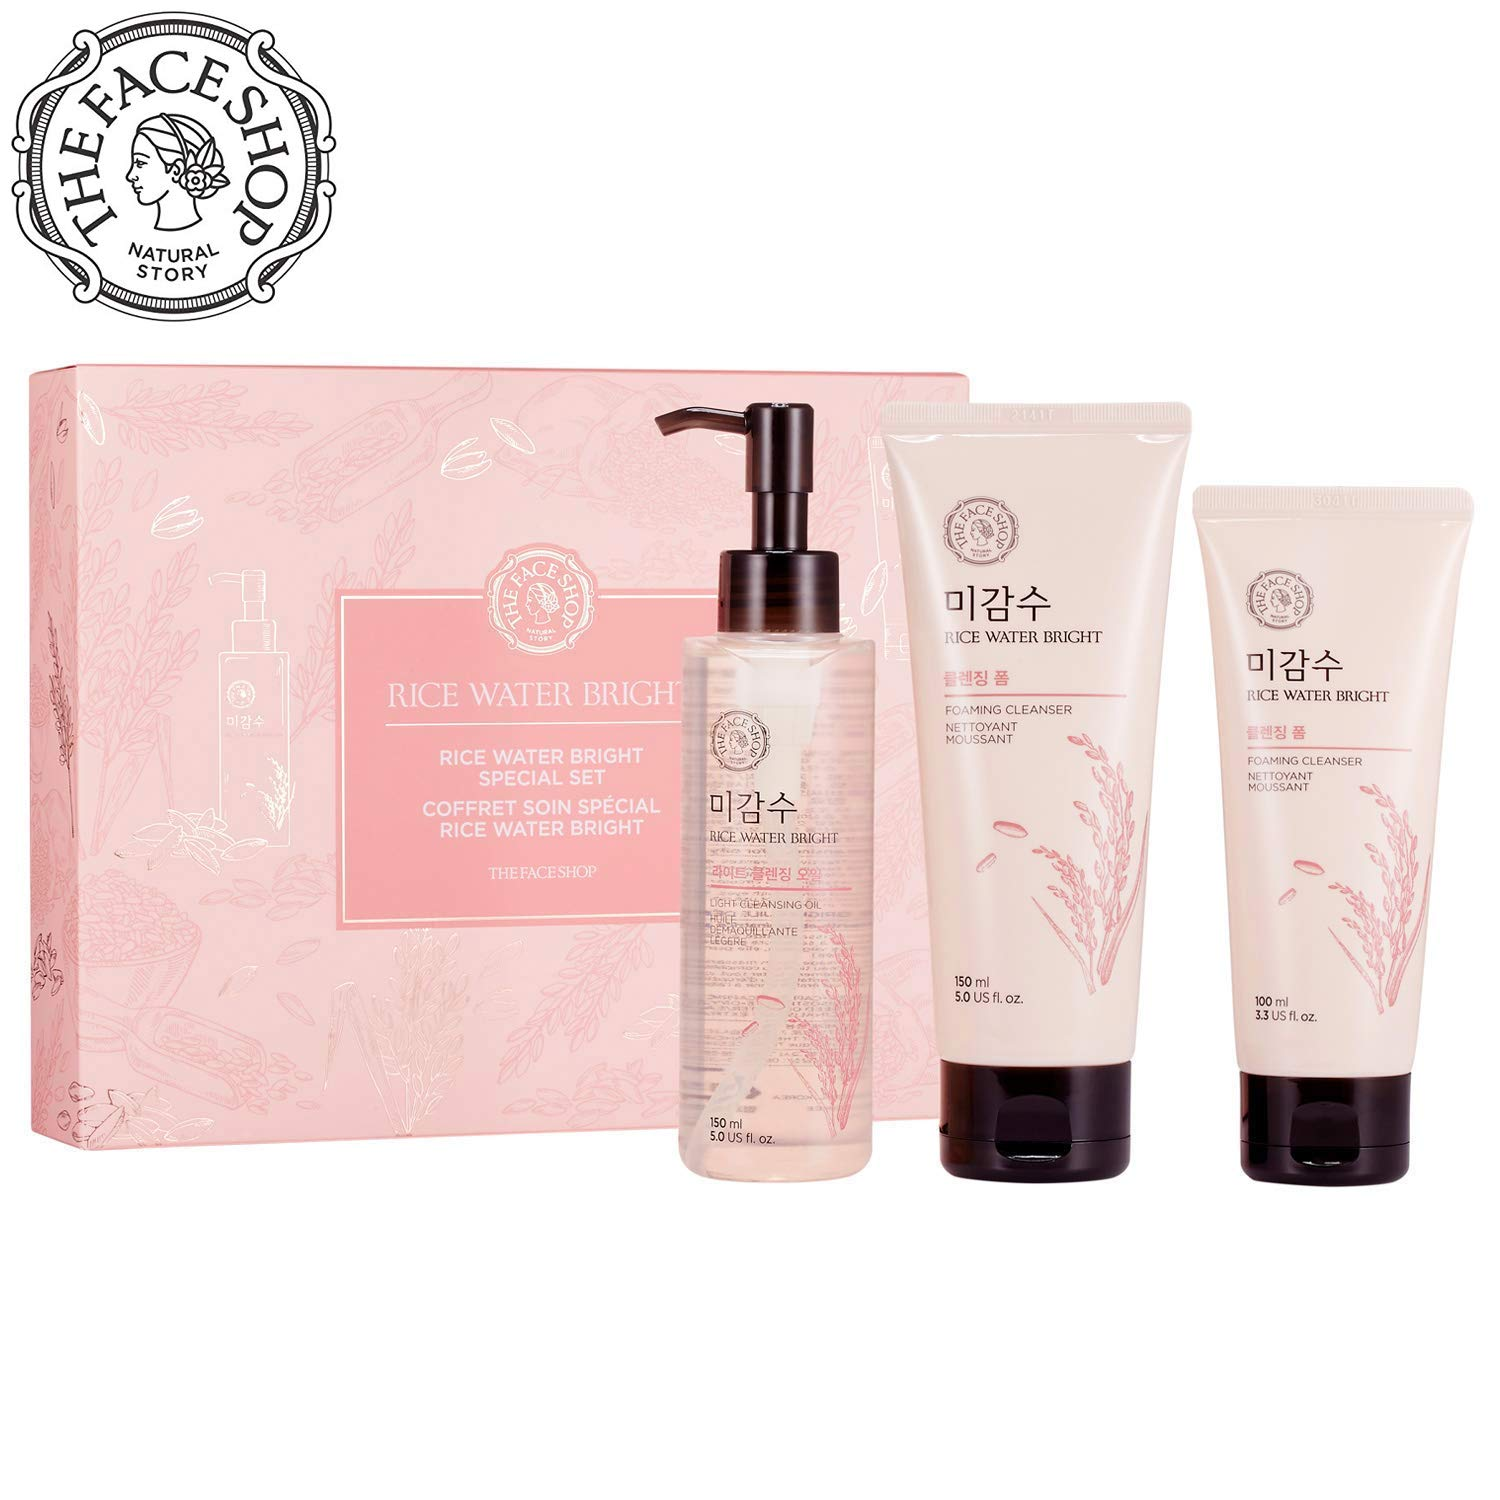 [THEFACESHOP] Rice Water Face Wash Set - Bright Foaming Facial Cleanser 150ml + Light Cleansing Oil 150ml with an Extra Cleansing Foam 100ml by THEFACESHOP